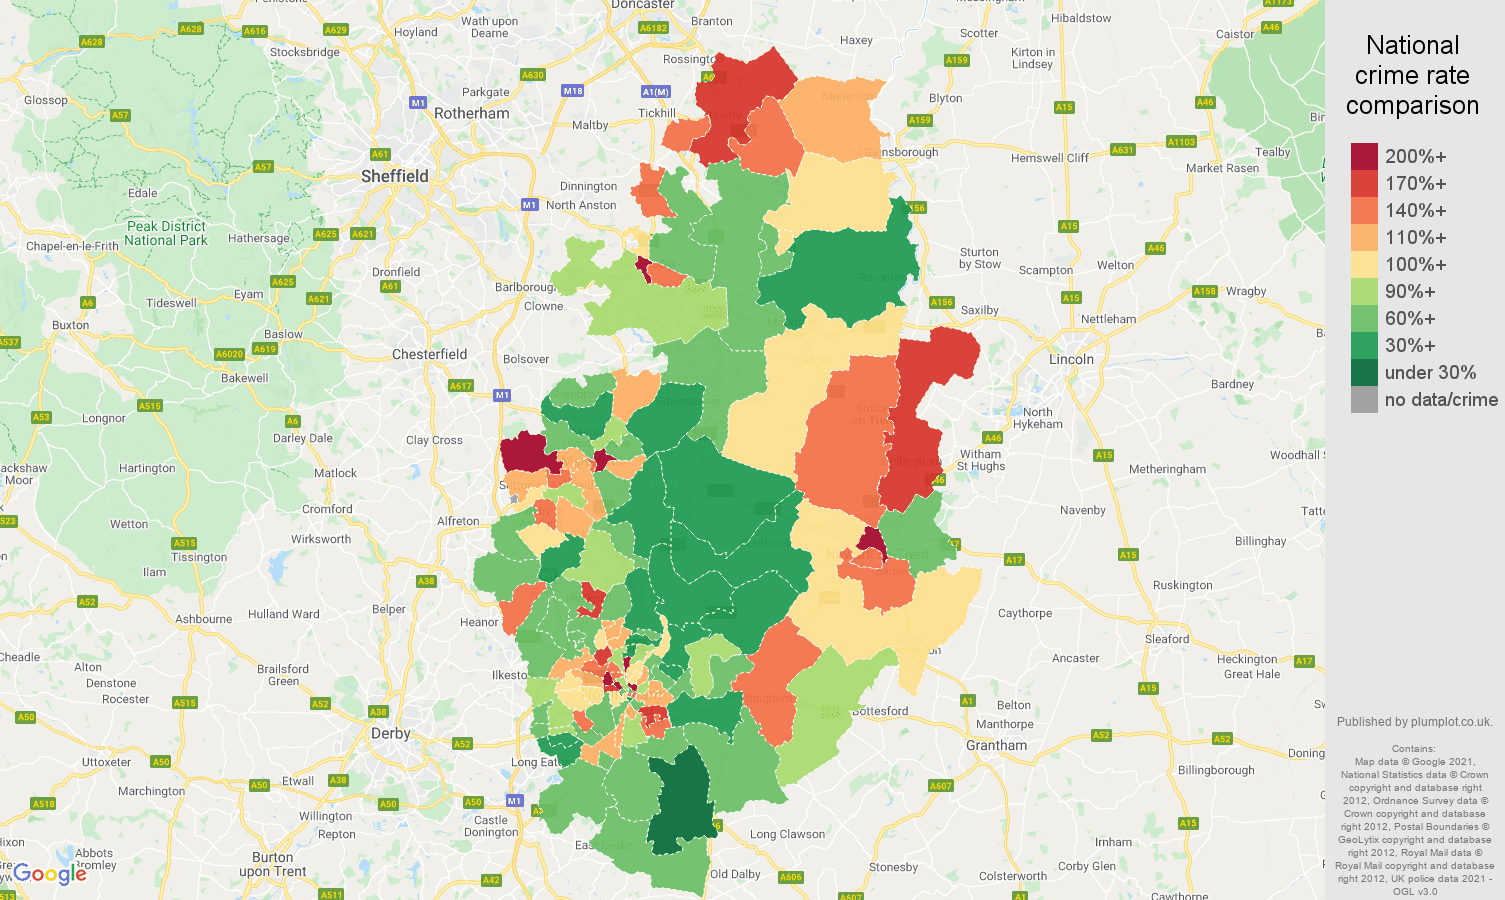 Nottinghamshire burglary crime rate comparison map